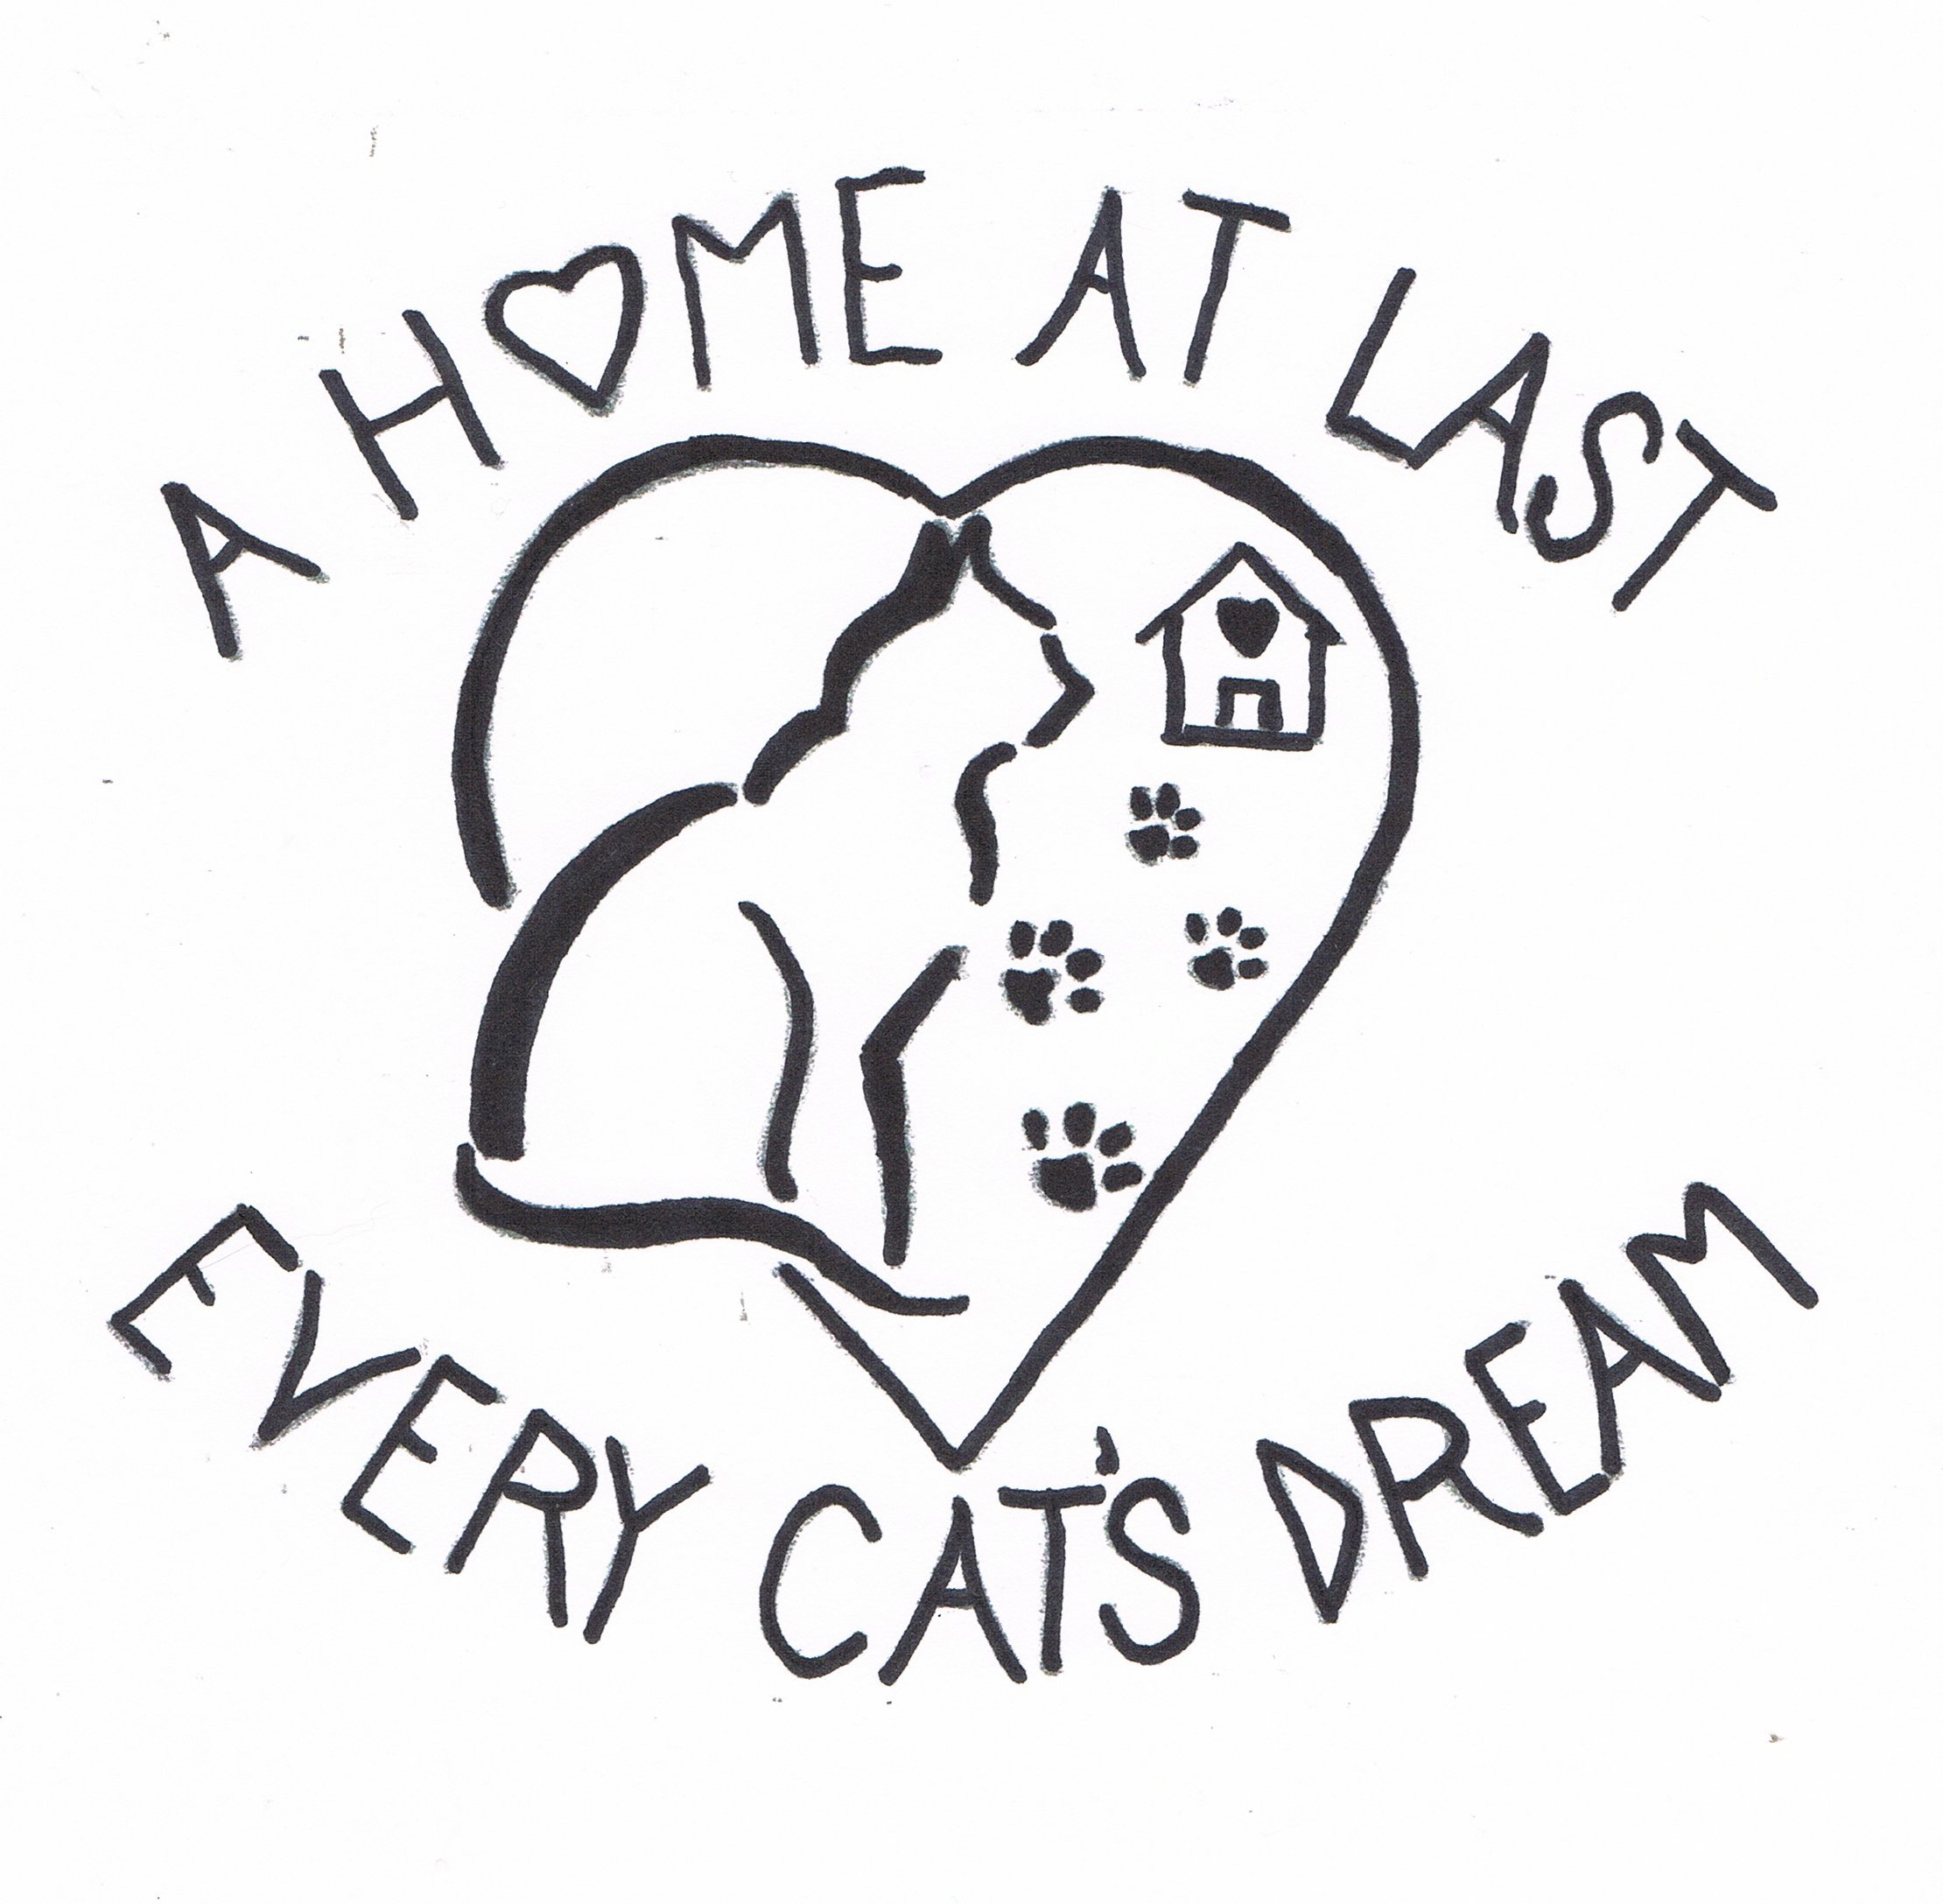 A Home at Last Animal Adoption Network